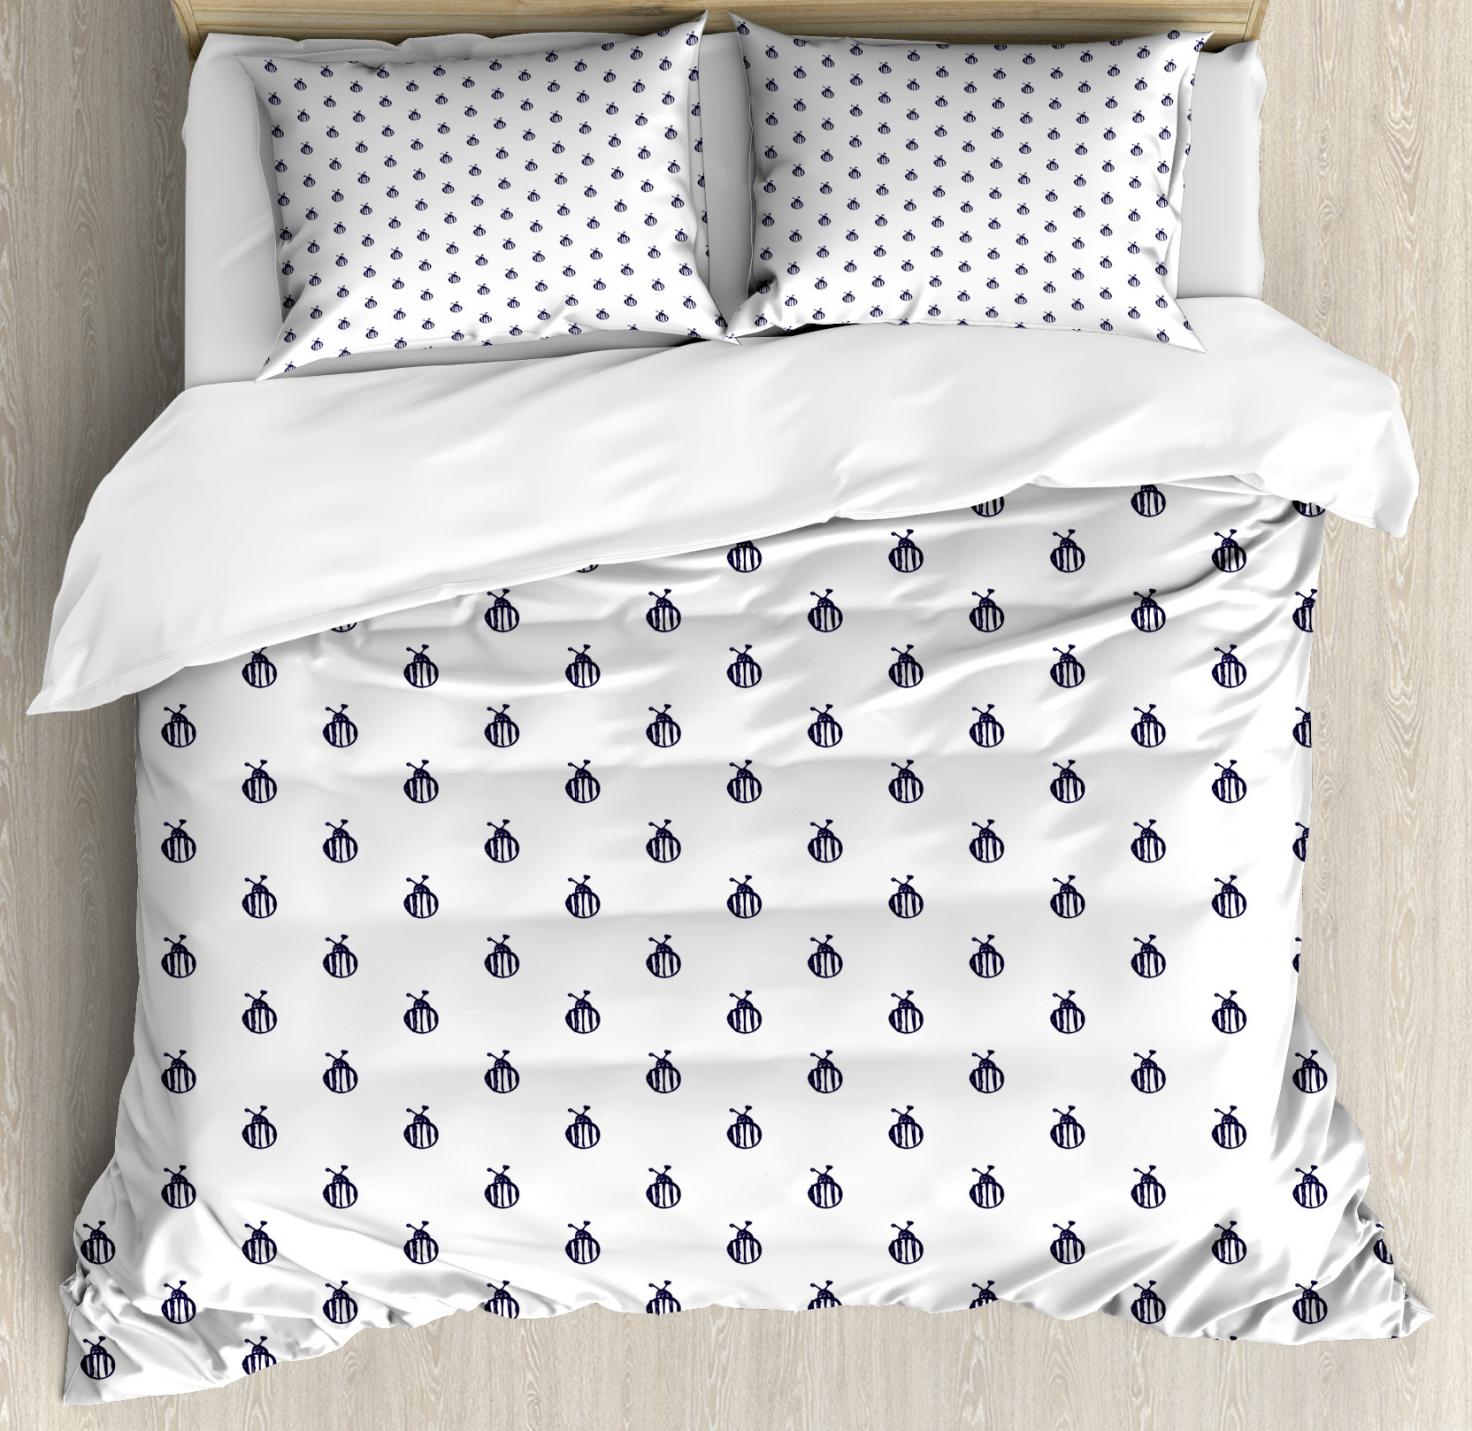 White Duvet Cover Queen Blue And White Duvet Cover Set Queen Size Hand Sketch Drawing Style Series Of Insects Doodle Colorado Bettle Decorative 3 Piece Bedding Set With 2